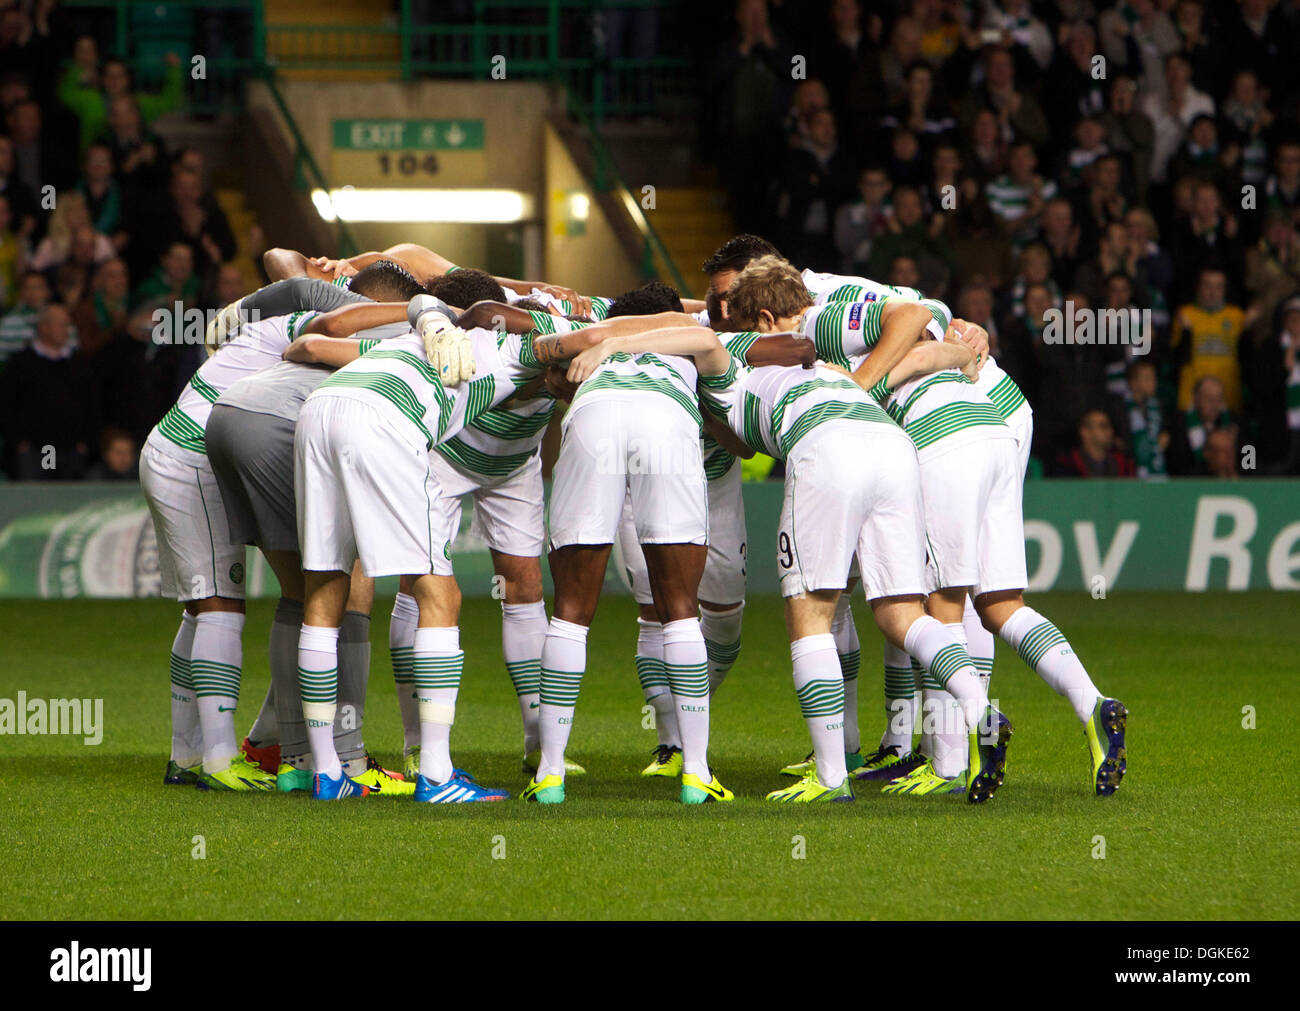 Celtic Huddle Football Stock Photos   Celtic Huddle Football Stock ... f8b005540